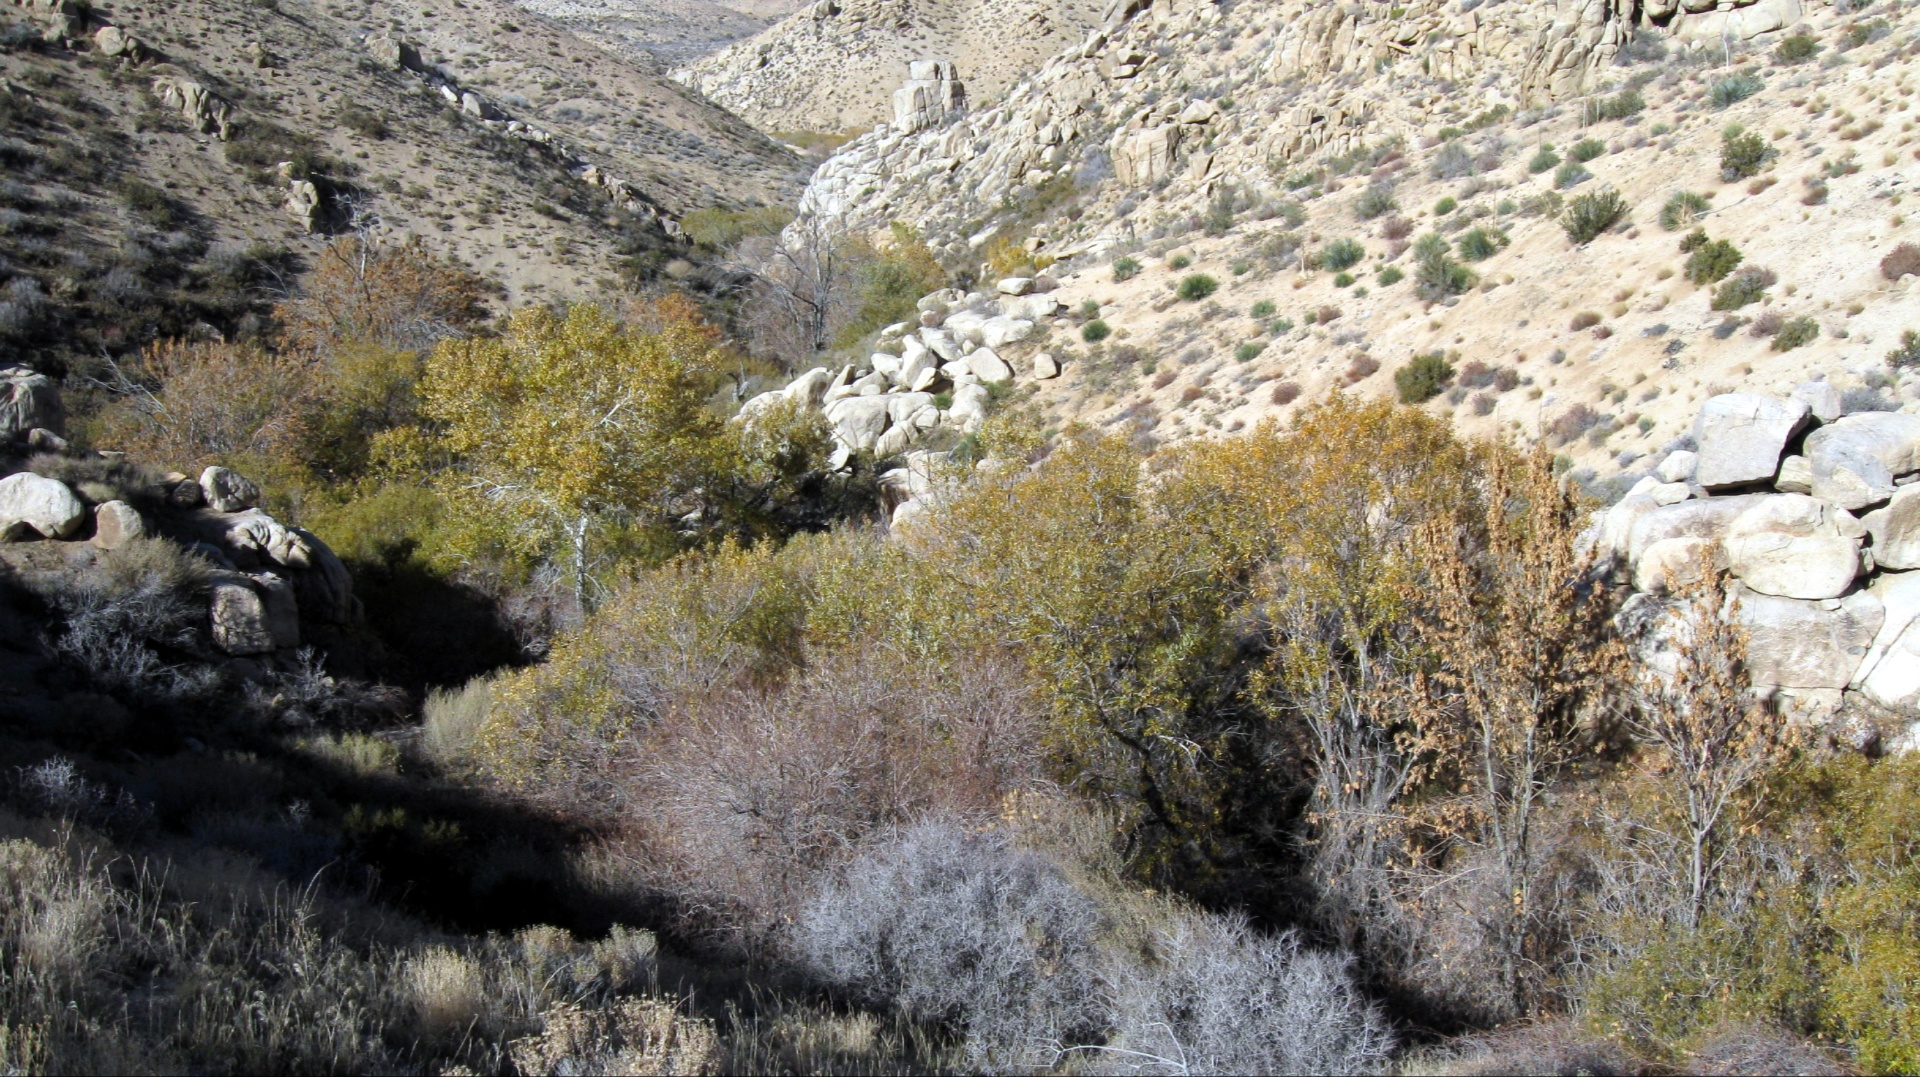 riparian area in Arrastre Canyon